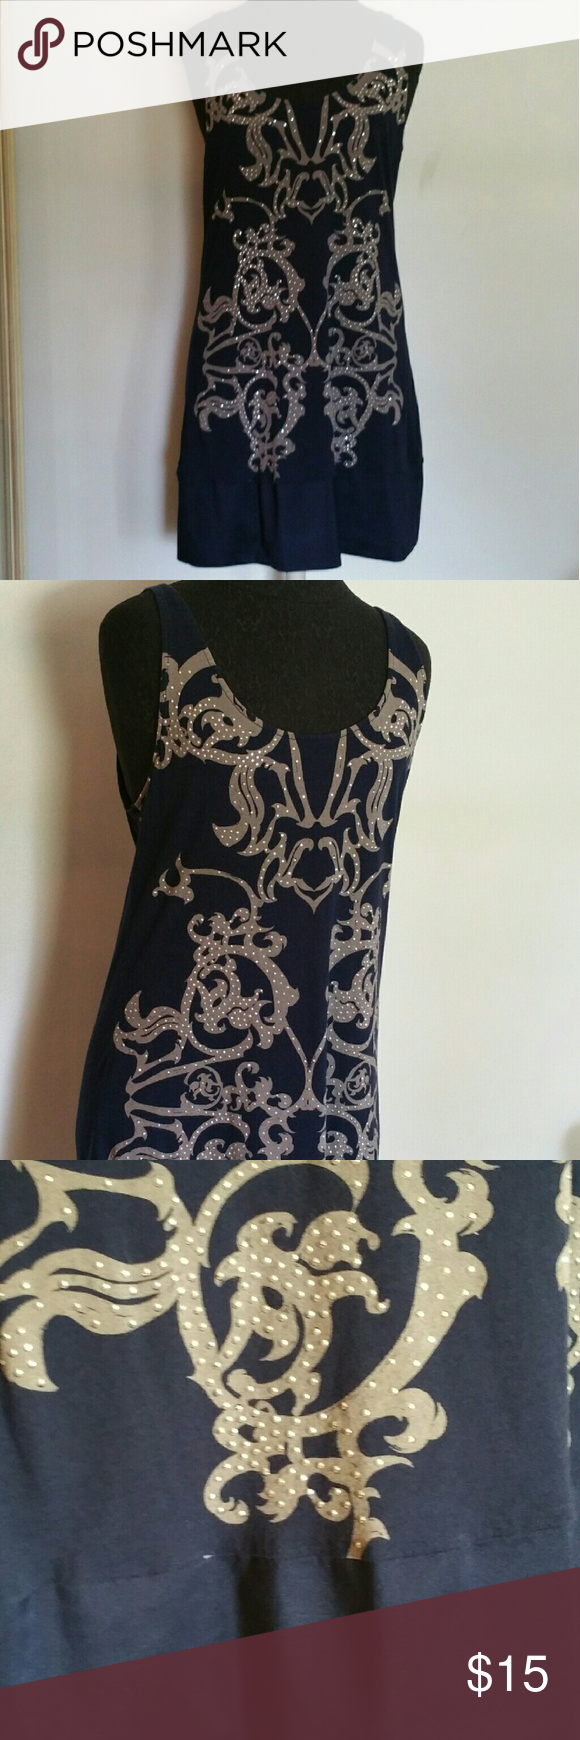 Embellished dress Deep tank top dress with gray and studded design. Bottom is about a 3 inch band. Express Dresses Midi